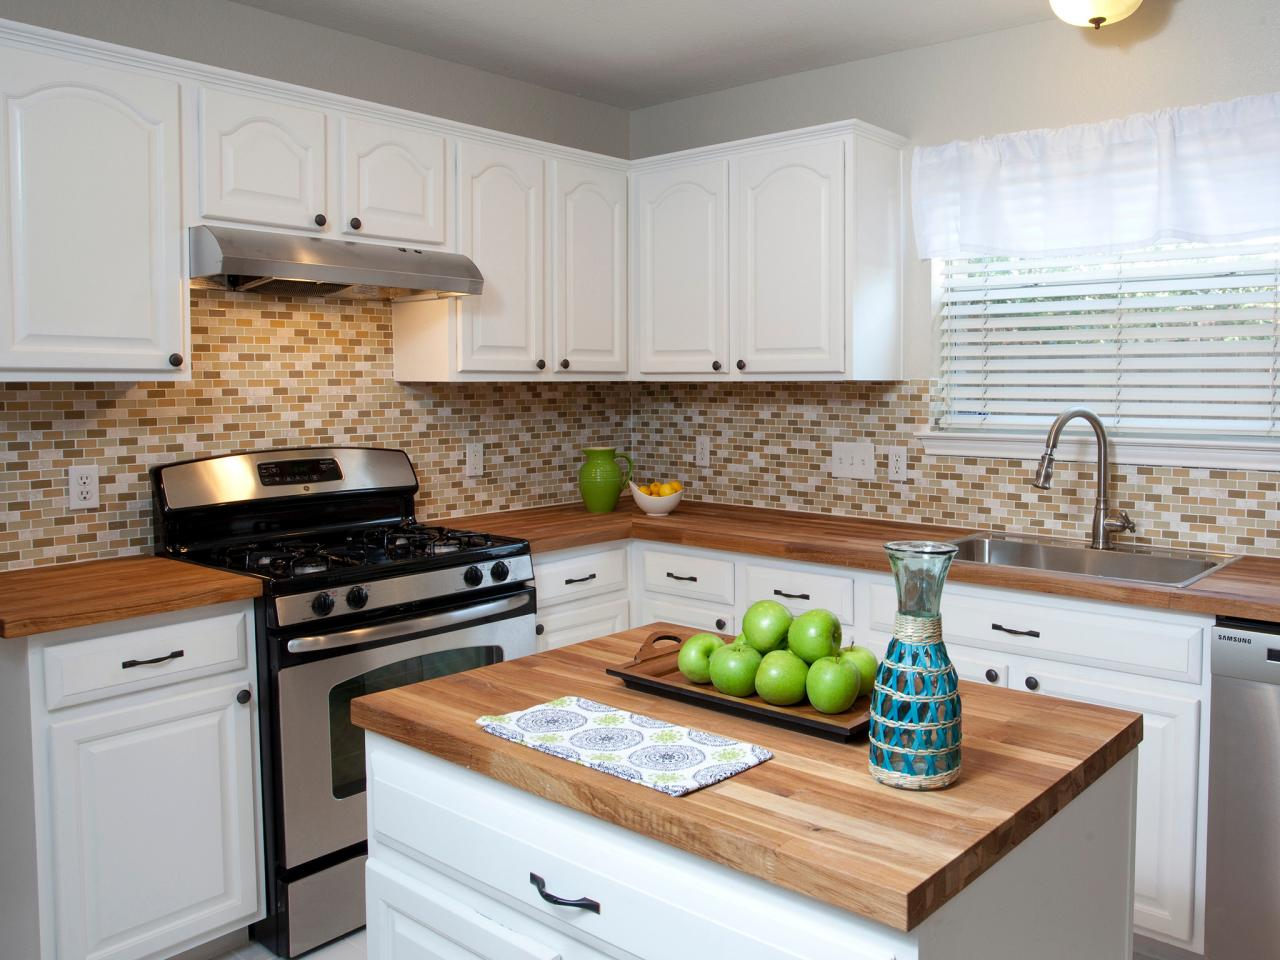 Painting kitchen countertops pictures options ideas hgtv for Cabinet and countertop design